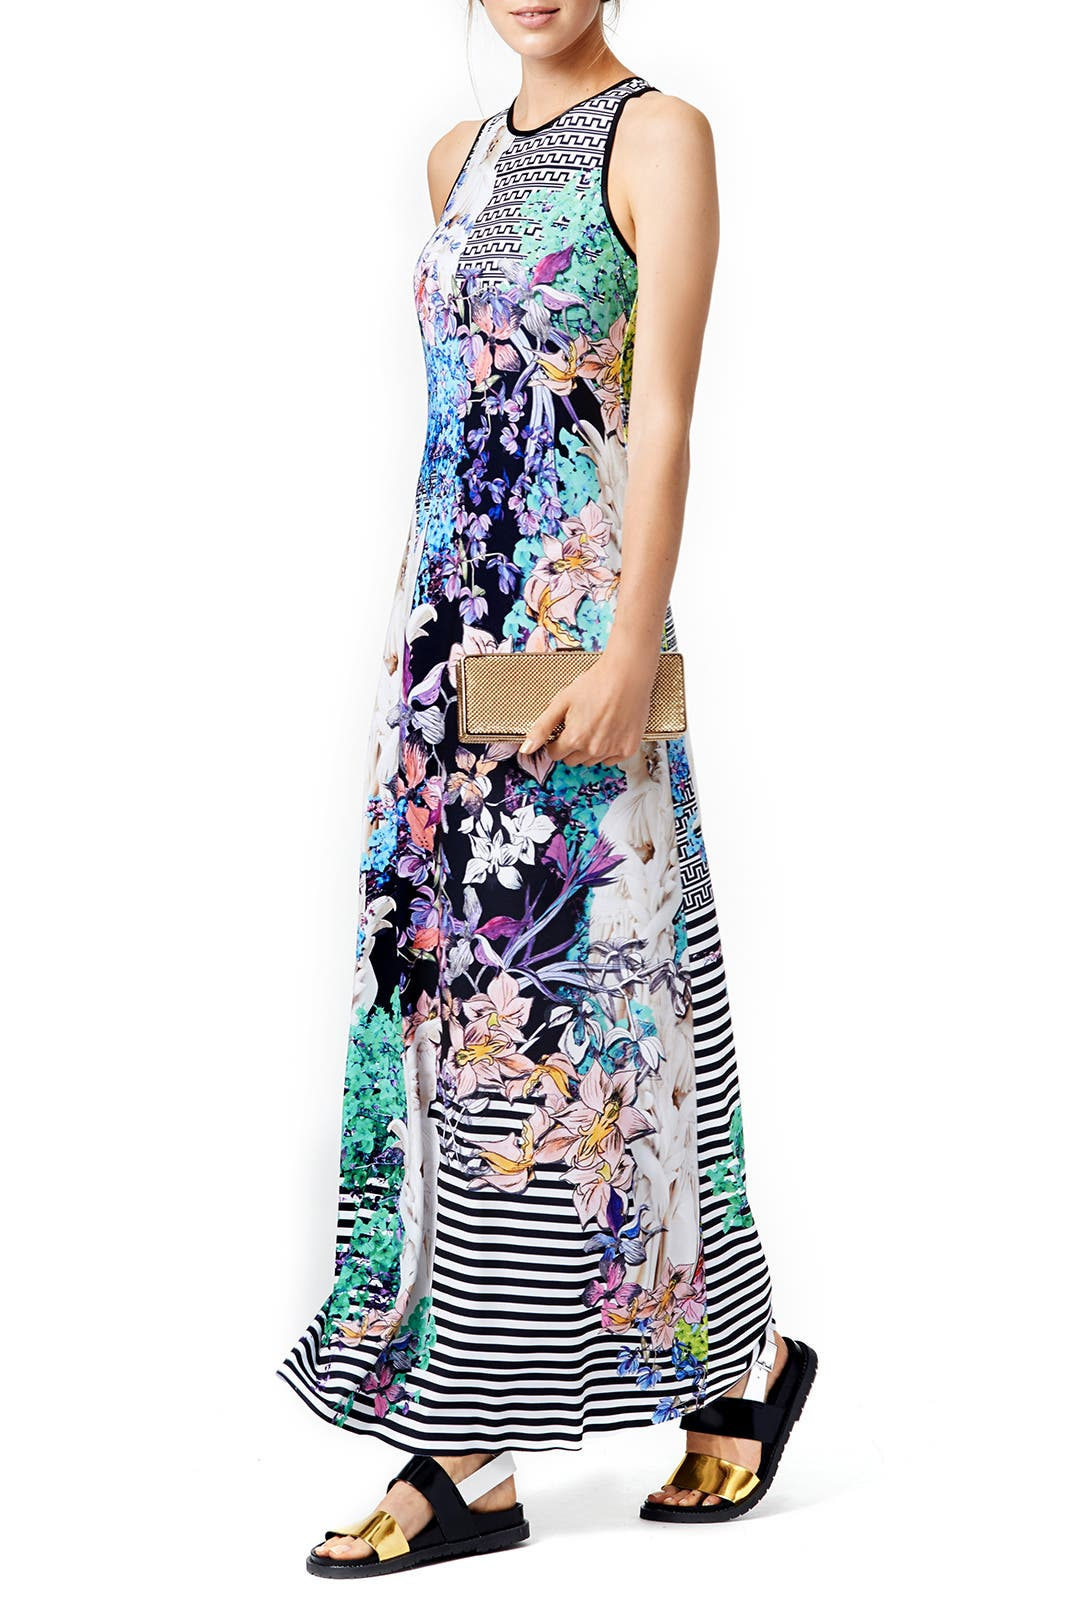 Enchanted Garden Maxi by Clover Canyon